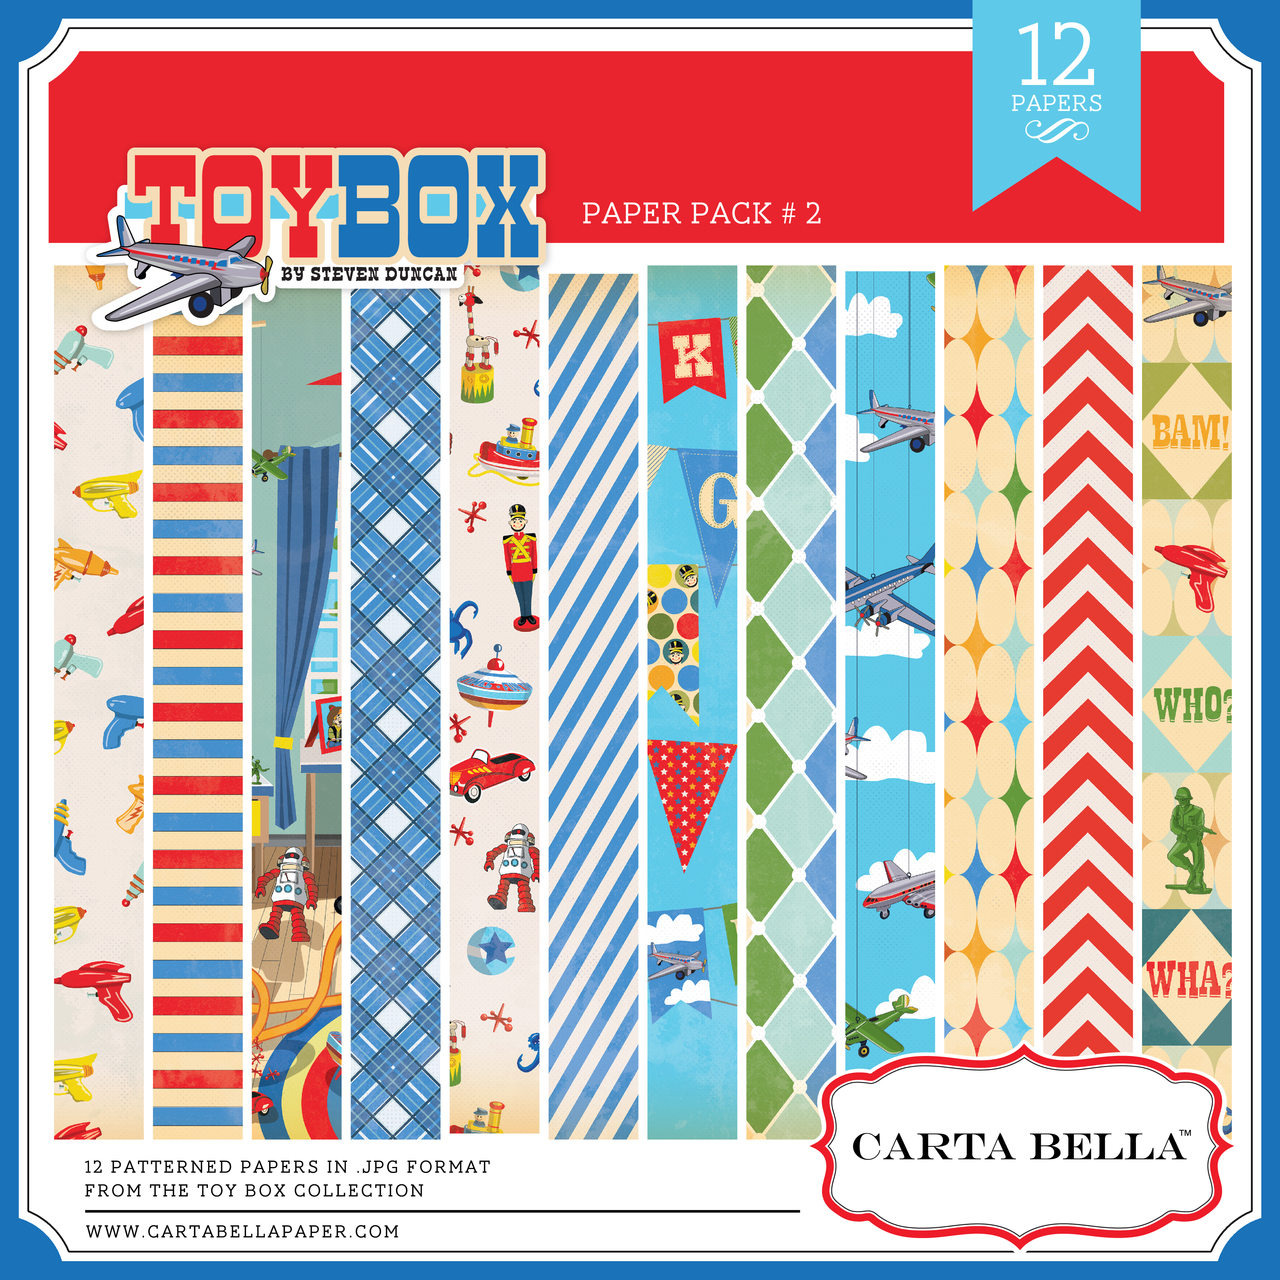 Toy Box Paper Pack #2